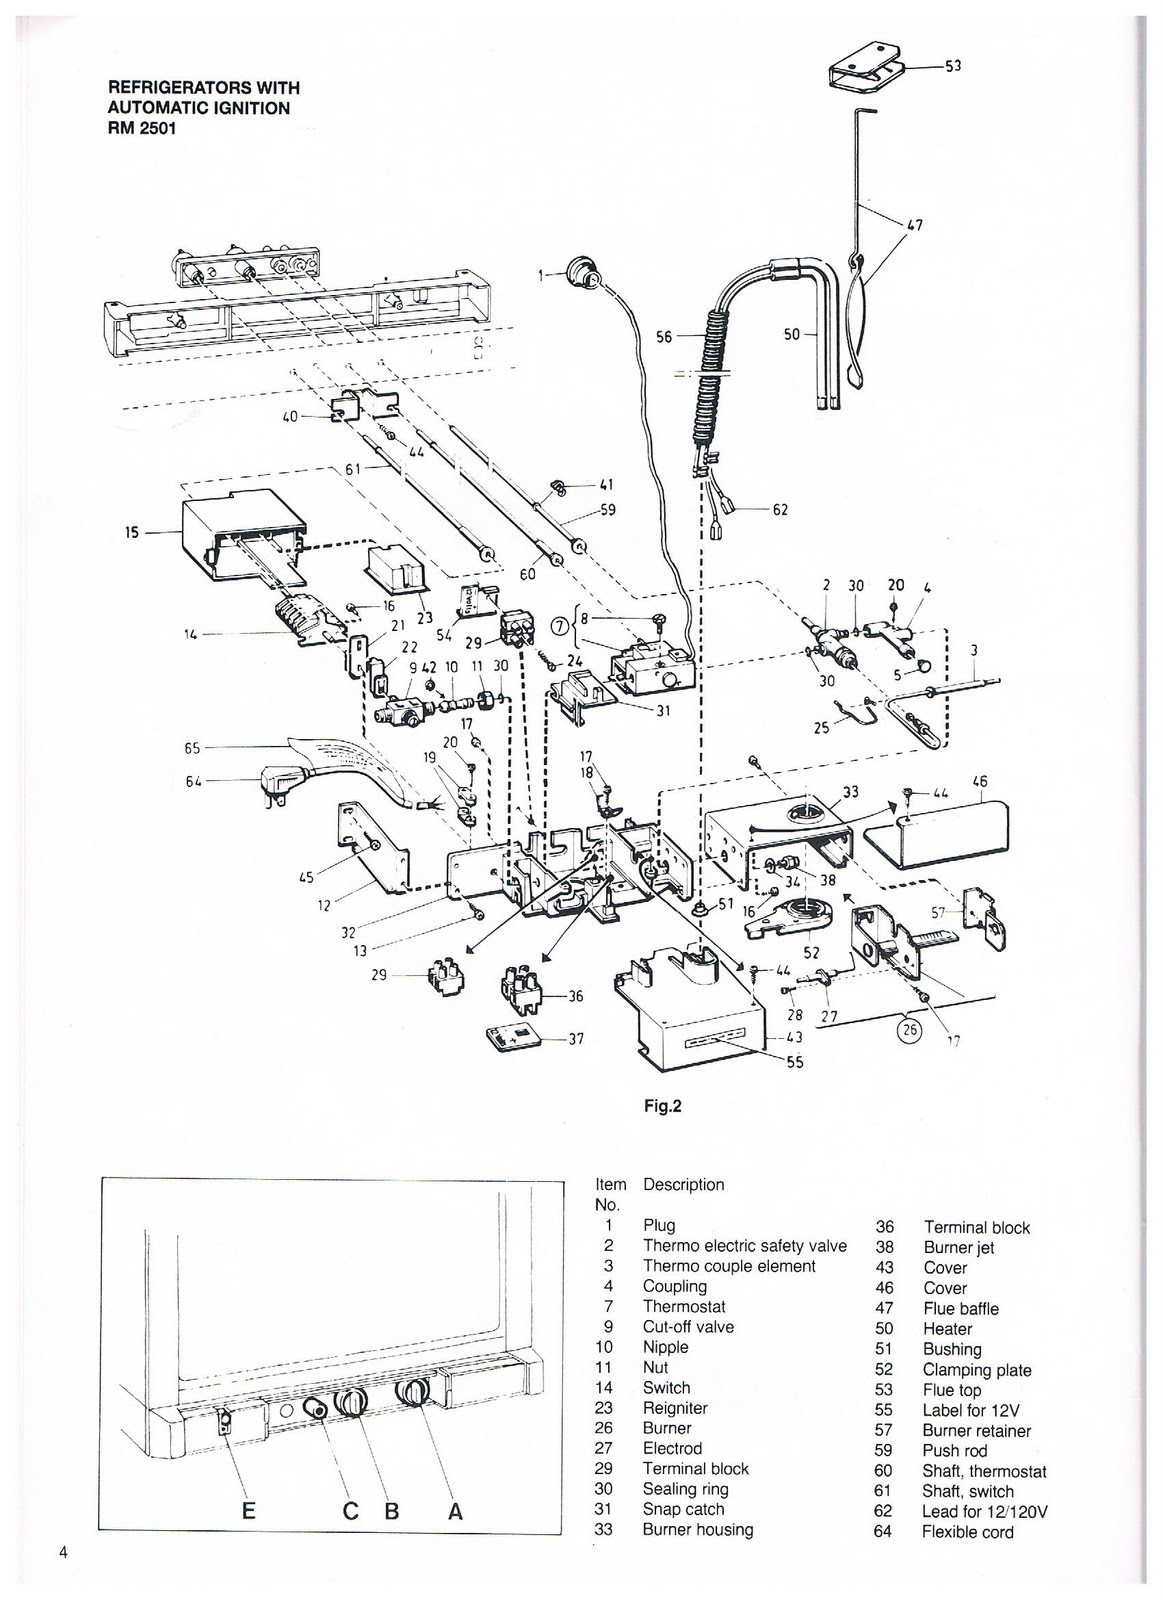 Amazing fleetwood motorhome wiring diagram contemporary everything